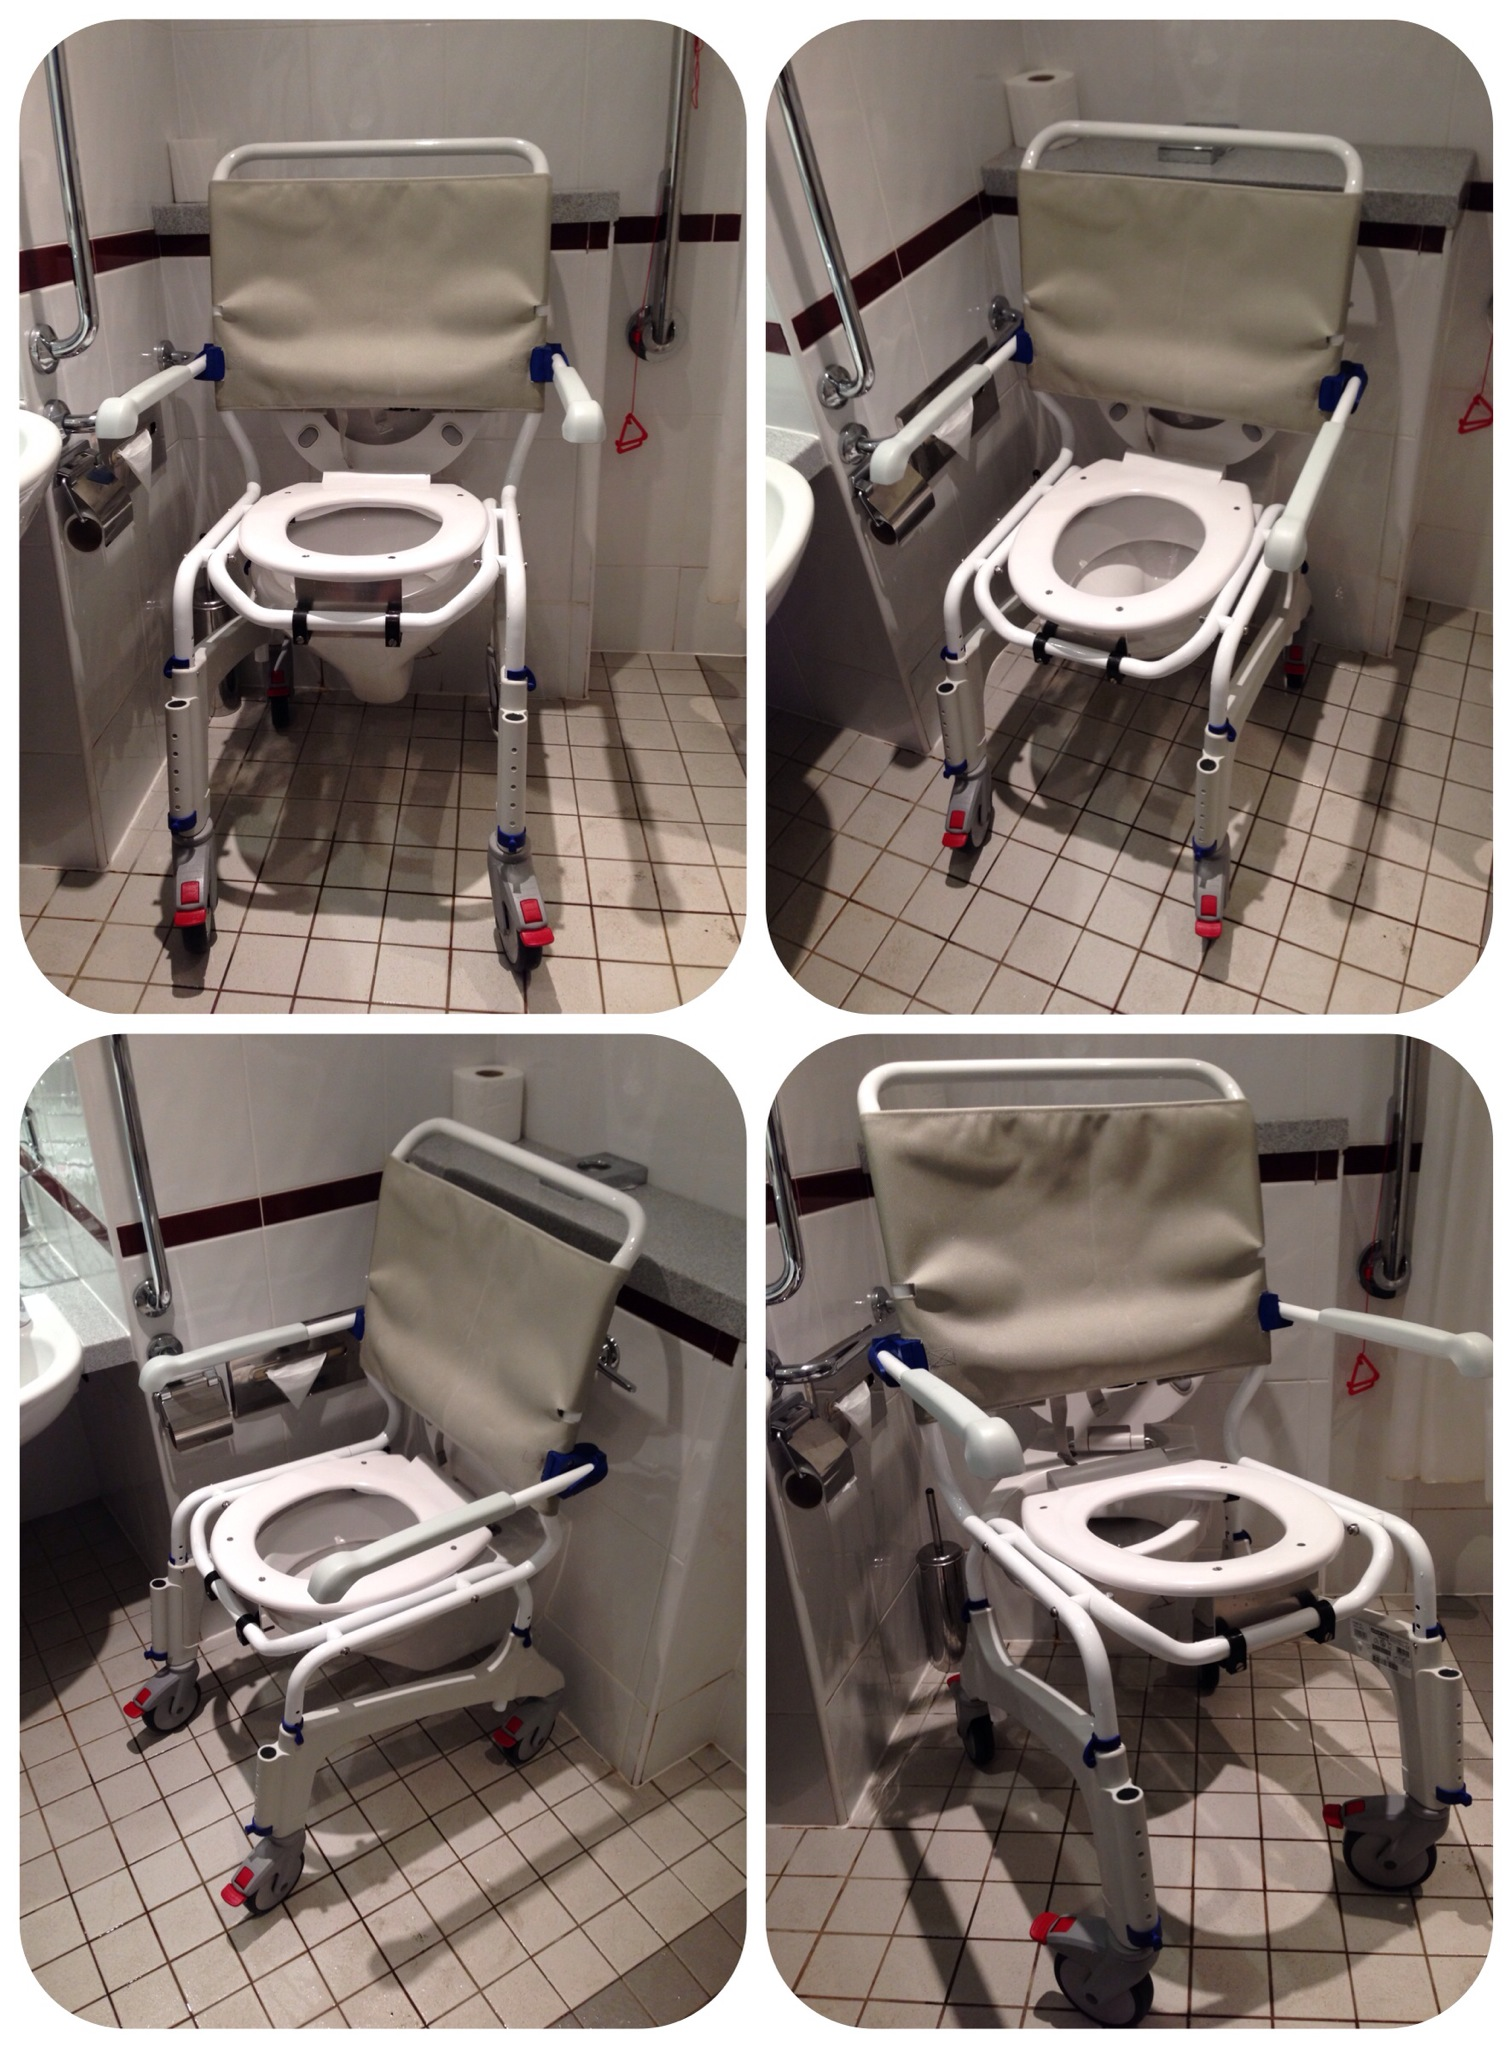 wheelchair toilet old office chairs choosing an over chair commode  the world of